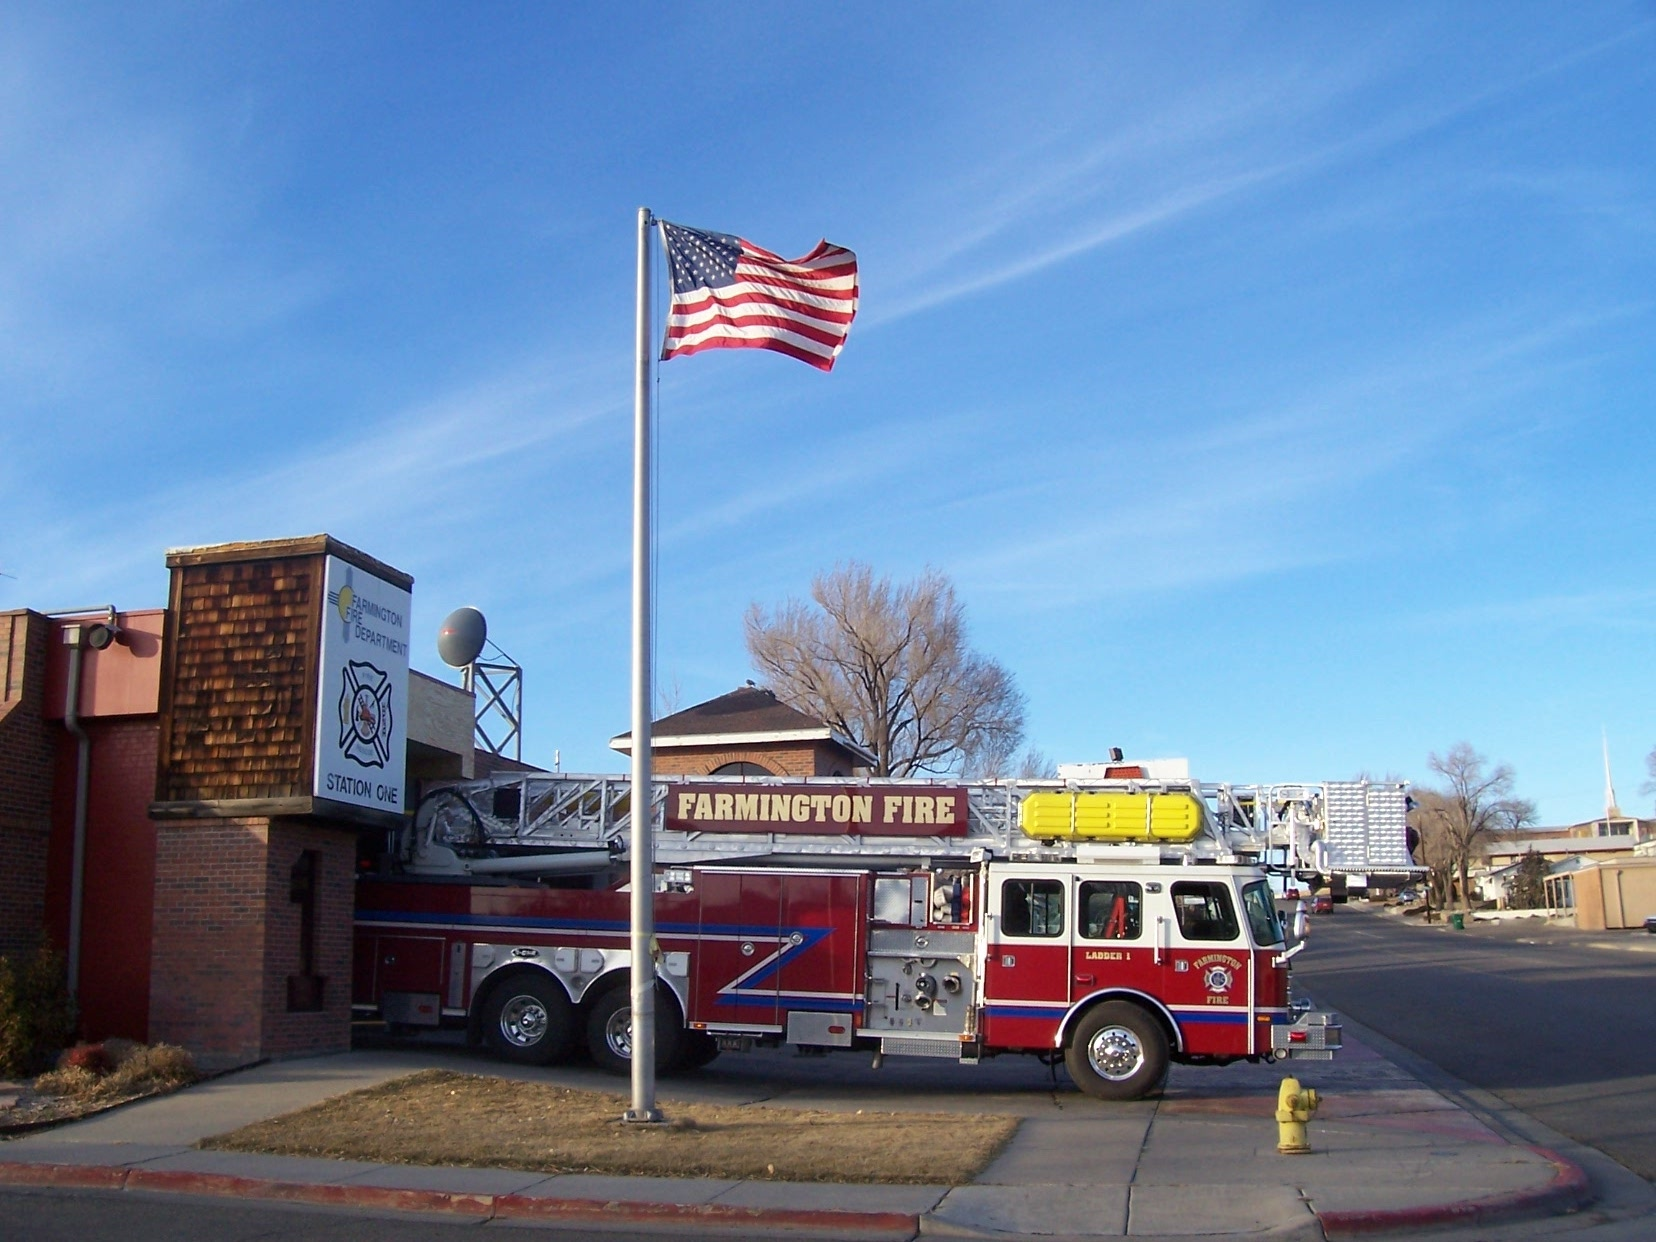 Ladder 1 picture.jpg